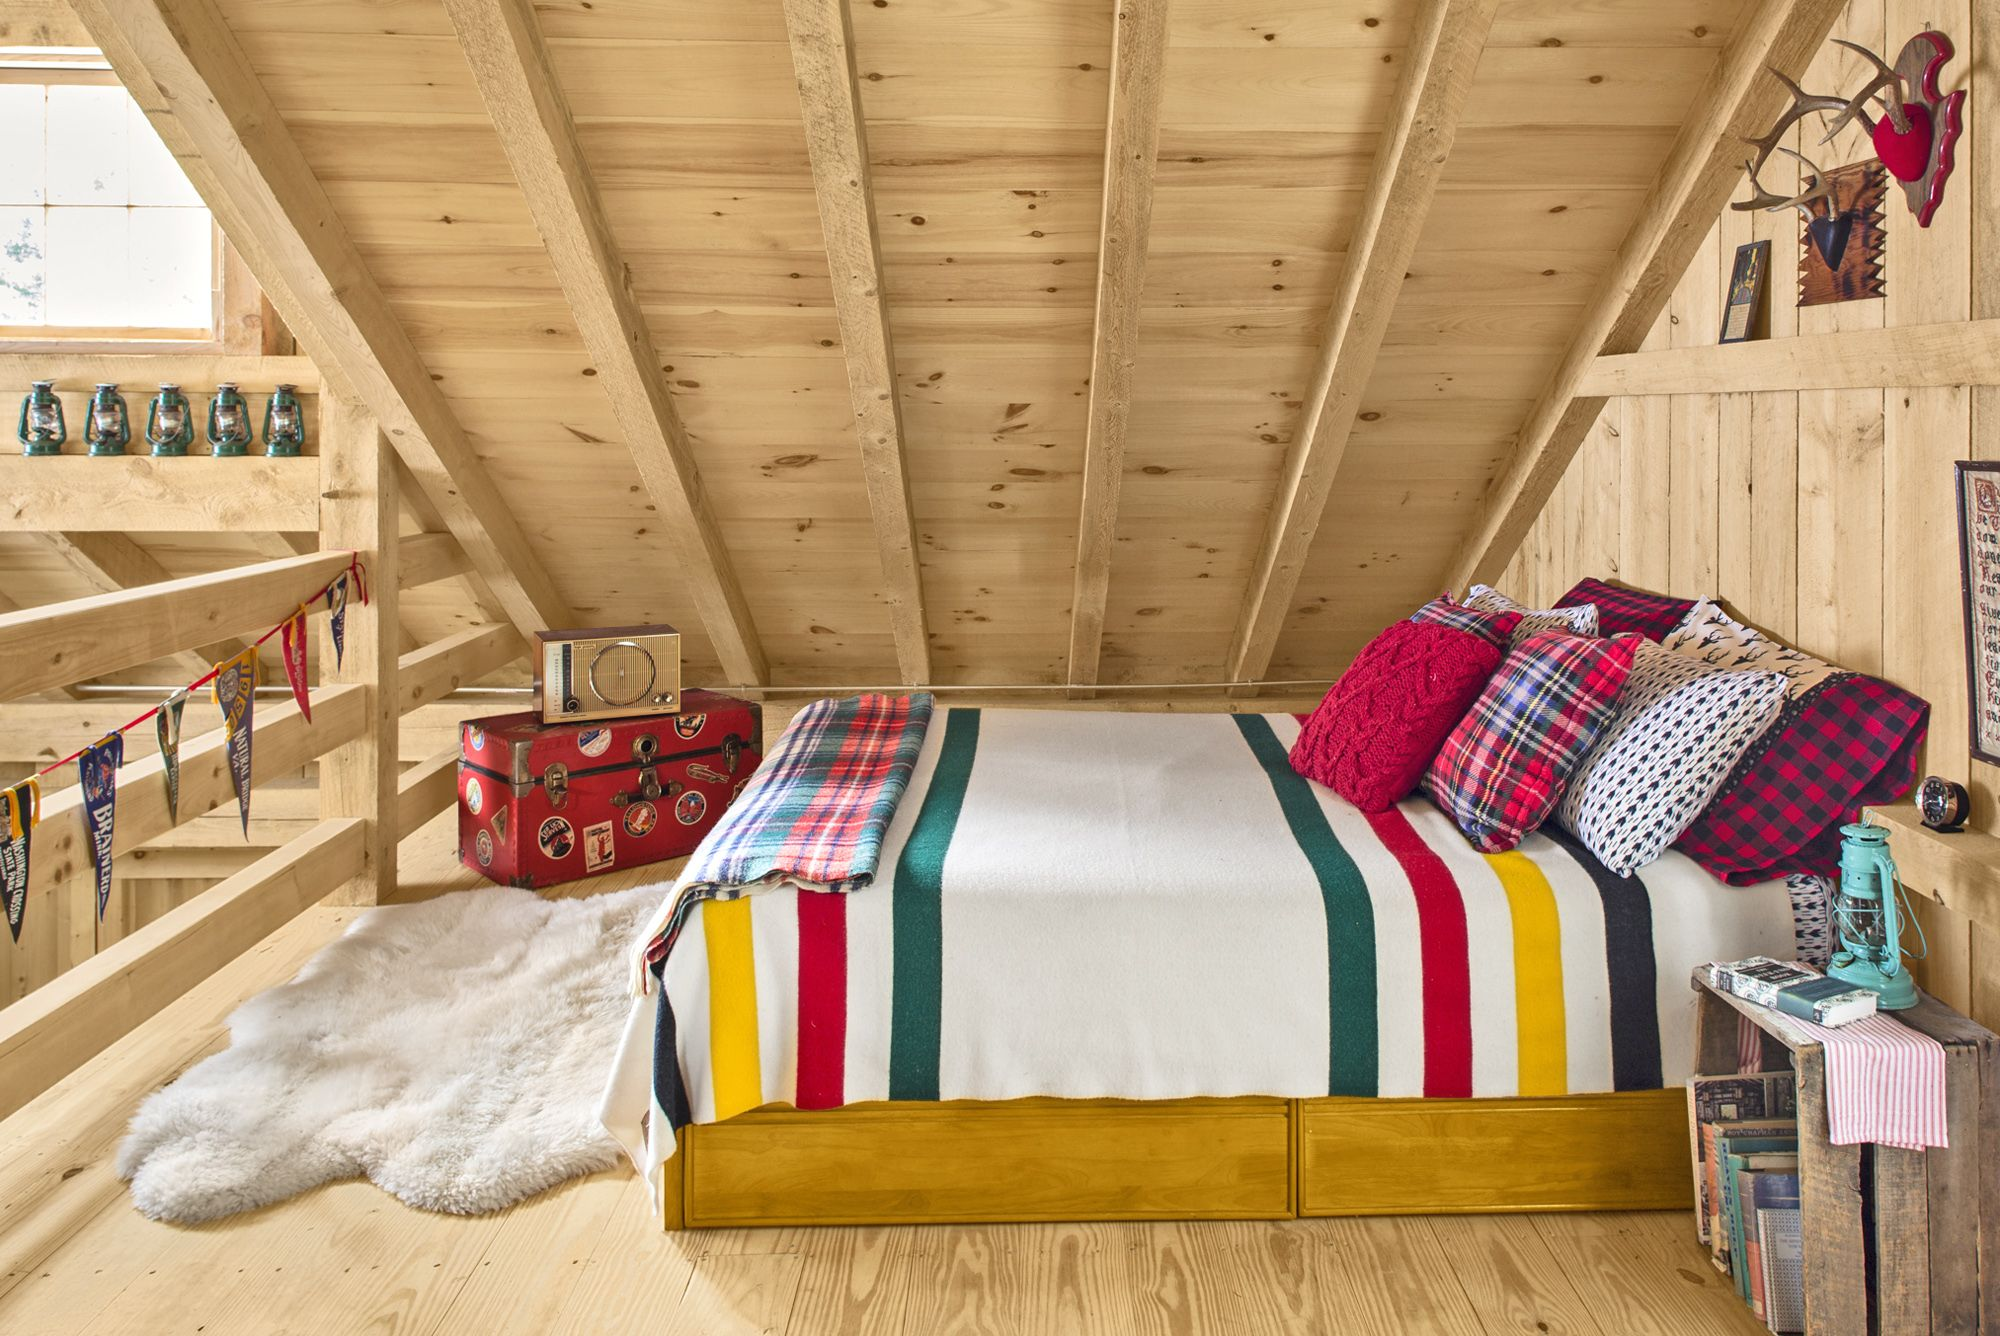 cozy bedroom ideas - pendleton blanket